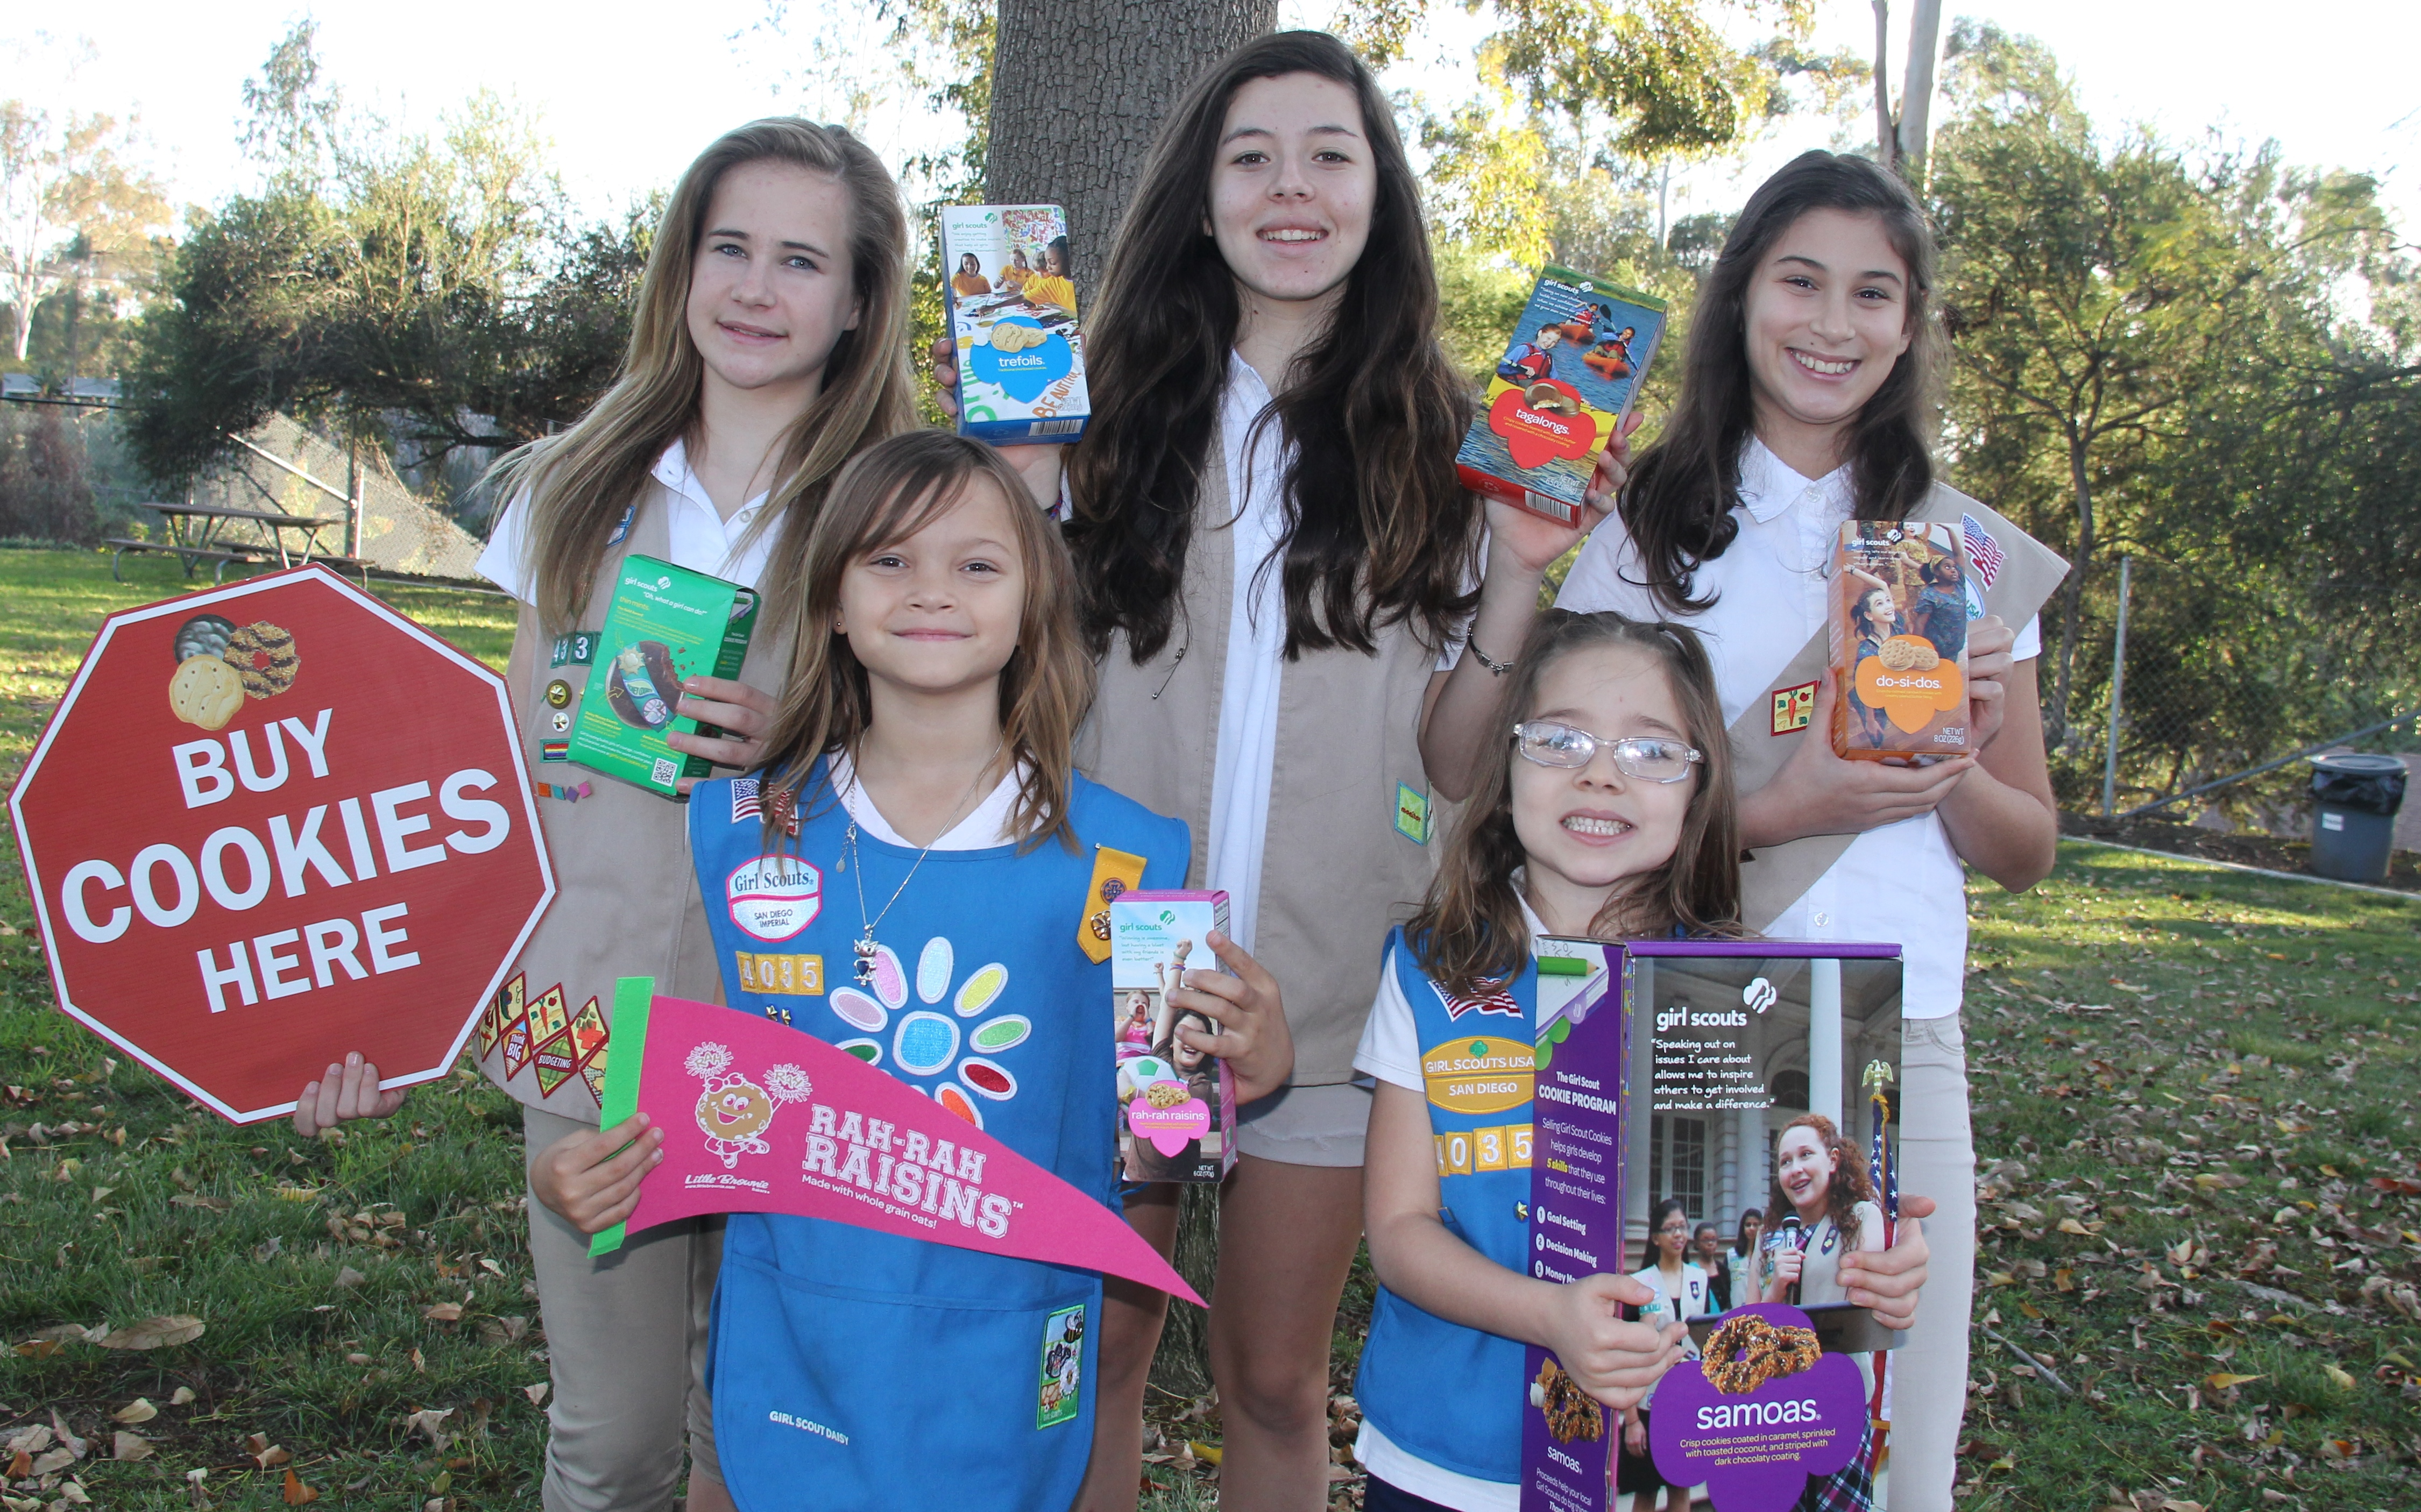 These North Park Girl Scouts stopped by Balboa Park headquarters to pick up cookie marketing supplies. Back row, from left: Girl Scout Cadettes Molly, Abril and Reneé of Troop 4339; front: Girl Scout Daisies Kaia and Maya of Troop 4035. Maya's oversized box of Samoas touts the chocolate-coconut-caramel cookie's 40th anniversary.